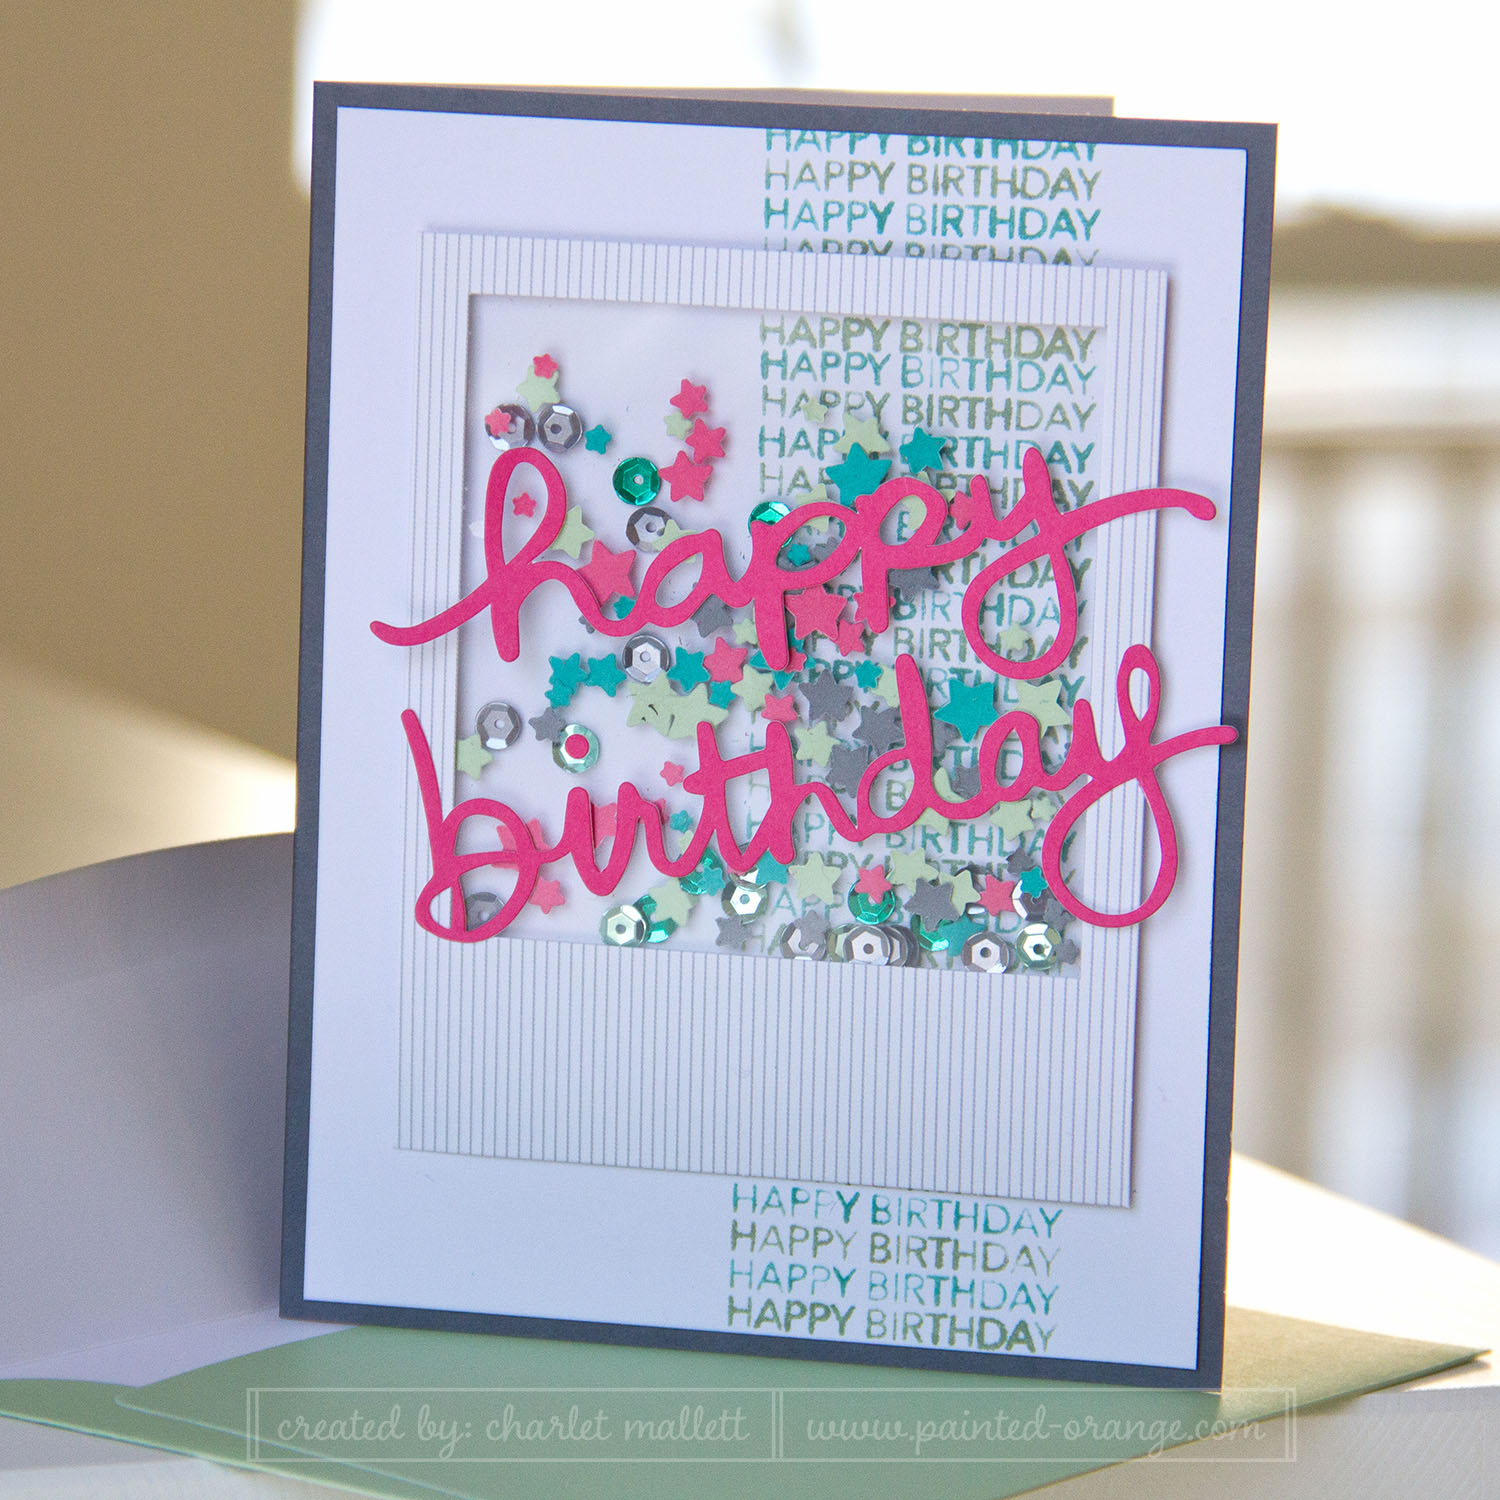 Happy Birthday altered card from the All Shook Up Paper Pumpkin' Kit